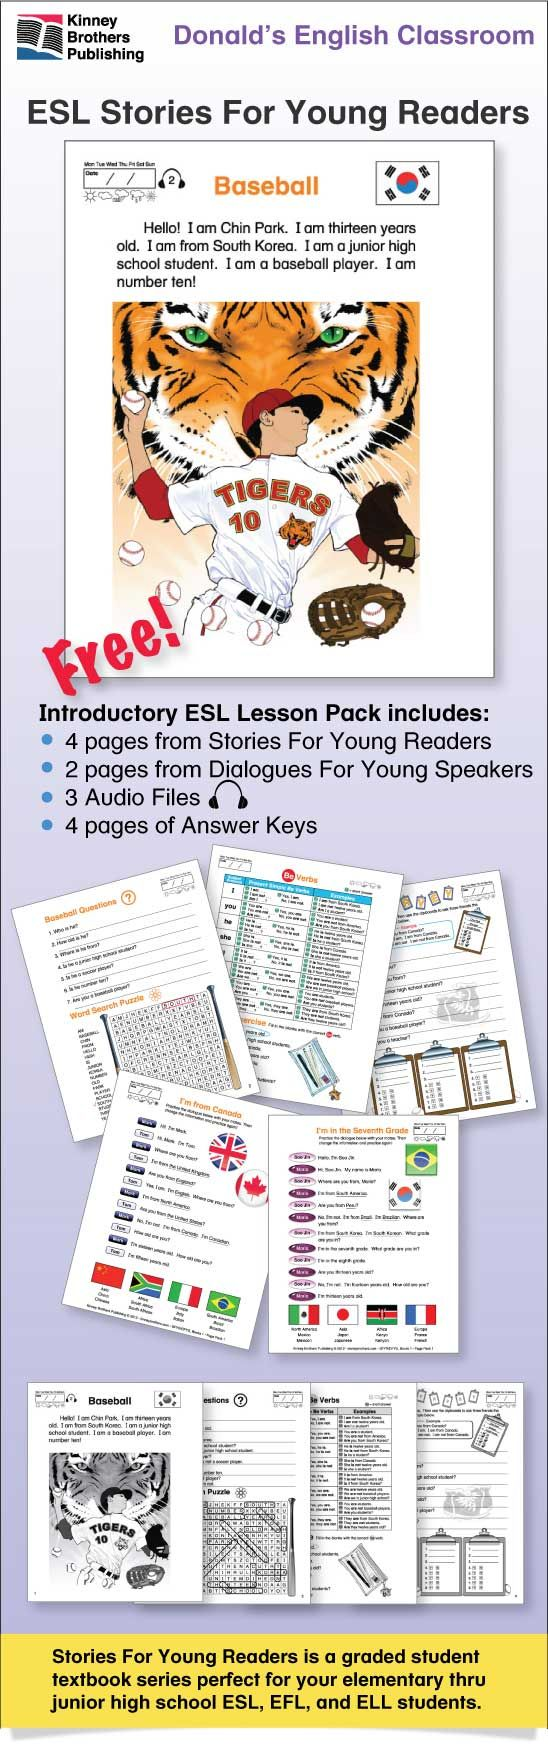 Stories For Young Readers, Lesson Pack 1, is a Free introduction to this popular ESL series.  Beginning with present tense 'be' verb practice, the lesson pack includes a word search puzzle, grammar chart, easy grammar practice with a student survey, and two easy dialogues.  #ESL #EFL #ELL